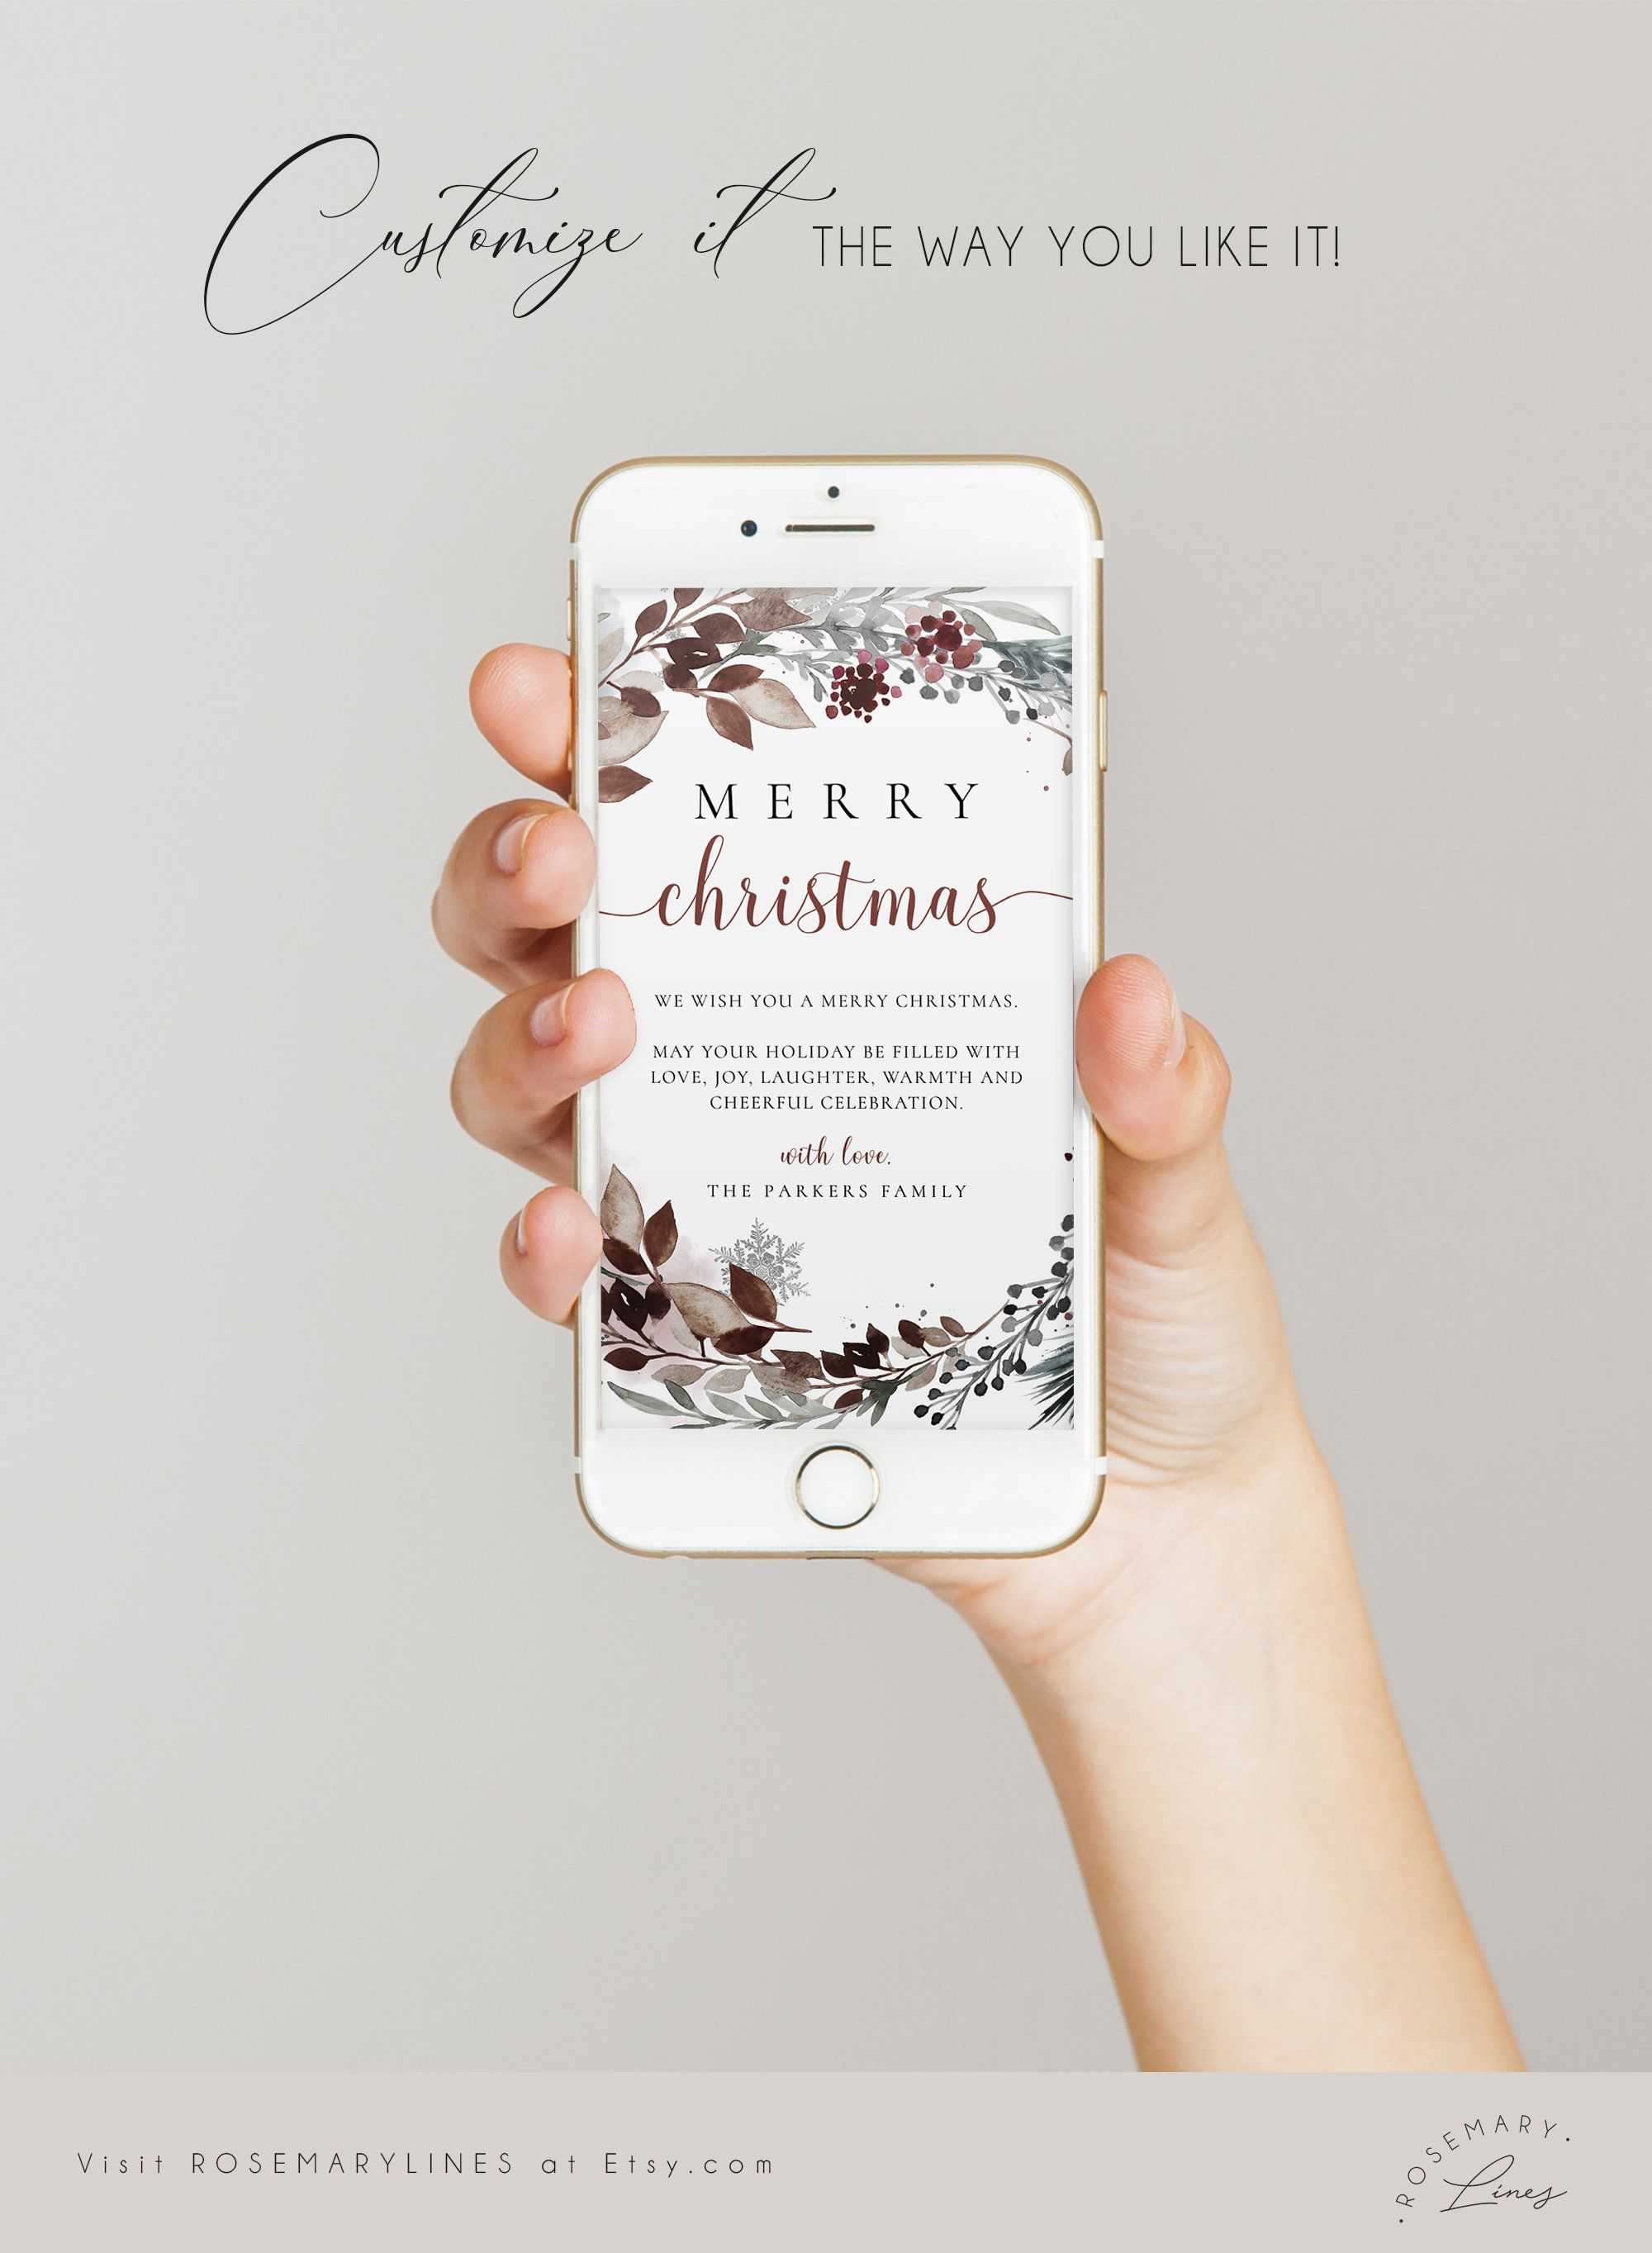 Electronic Christmas Card Template Family Holiday Card For Etsy In 2021 Electronic Christmas Card Christmas Card Template Family Holiday Cards